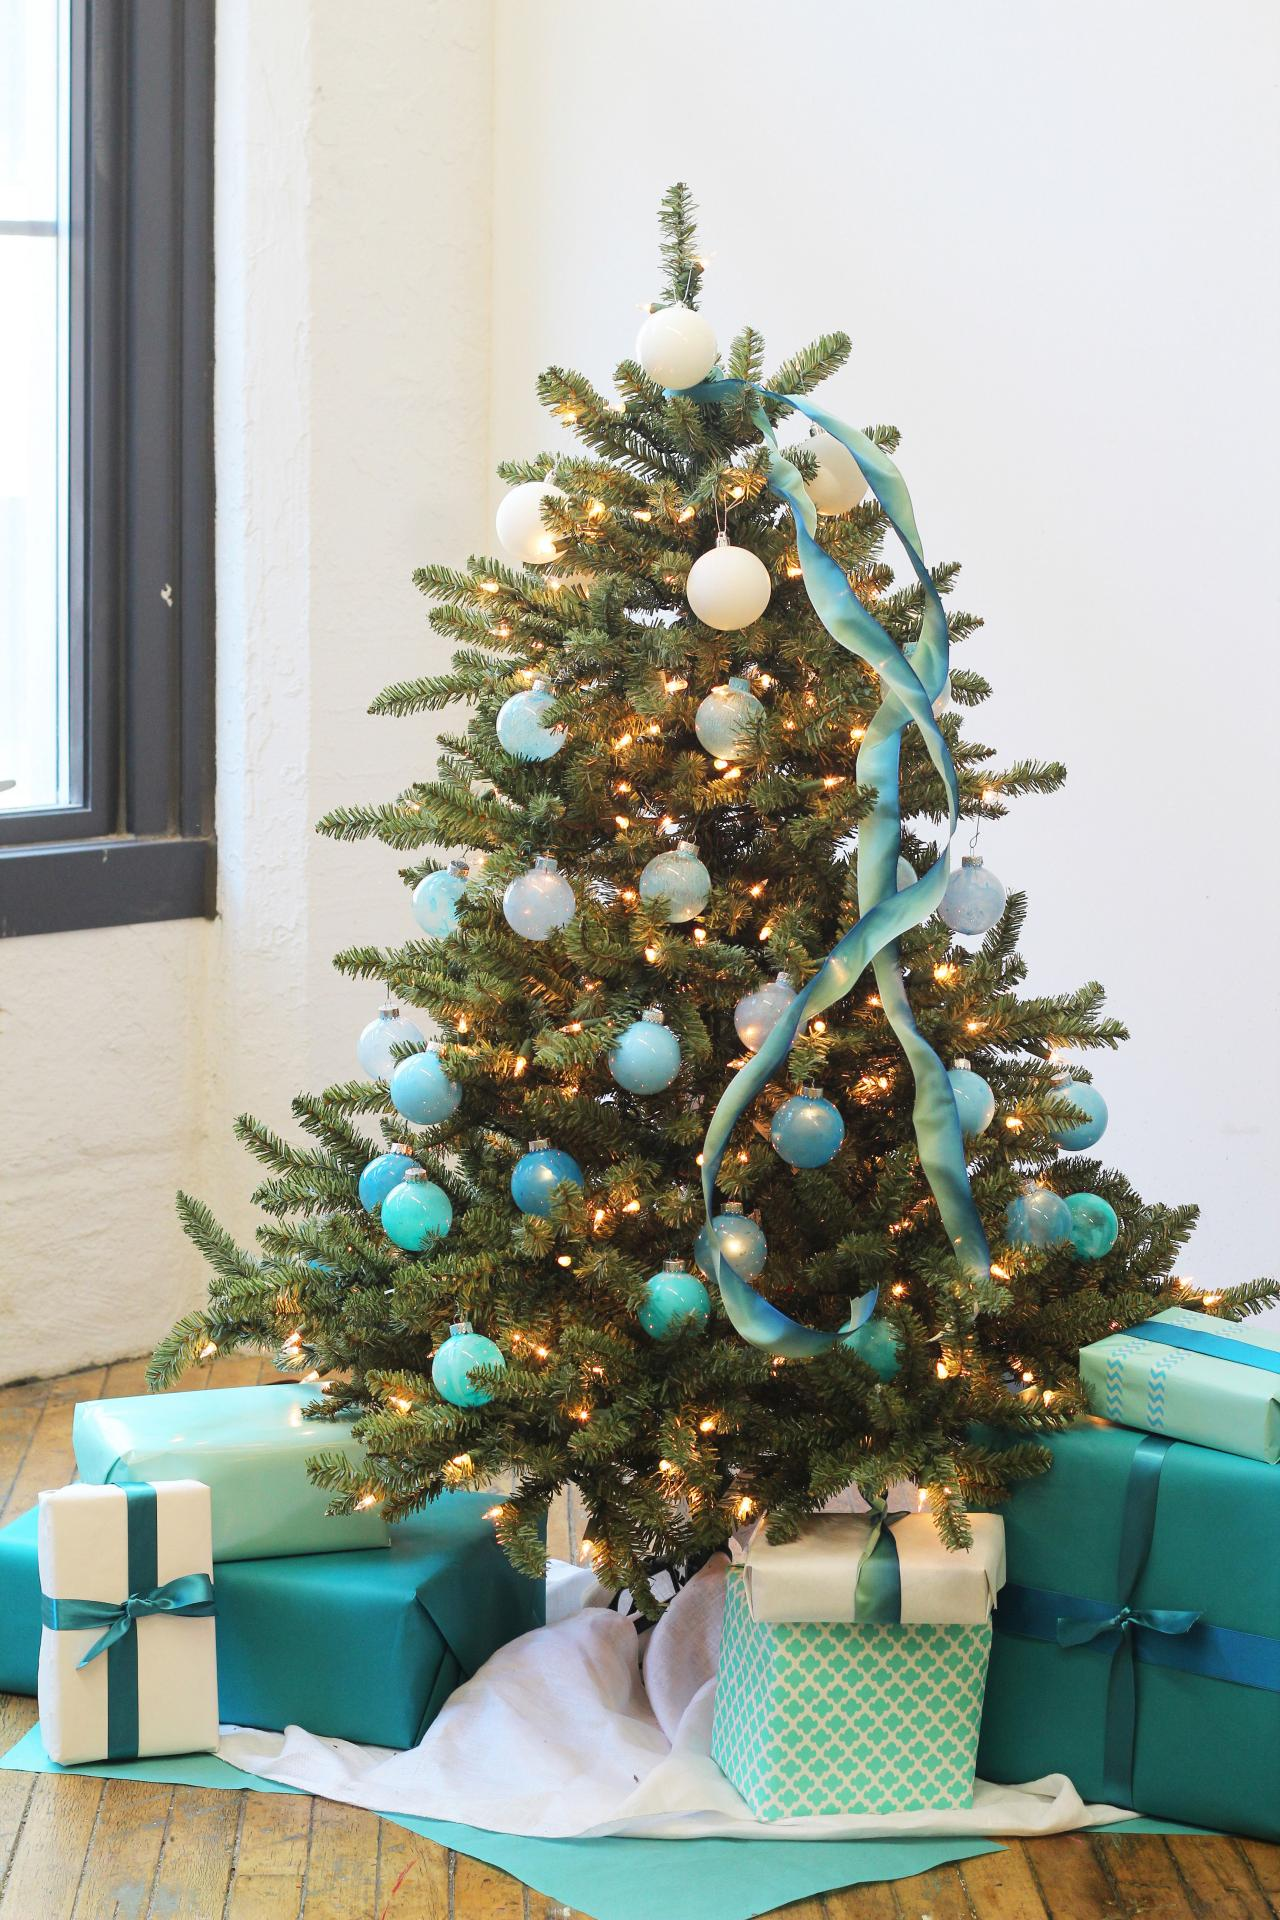 How to Decorate a Christmas Tree | HGTV's Decorating ...